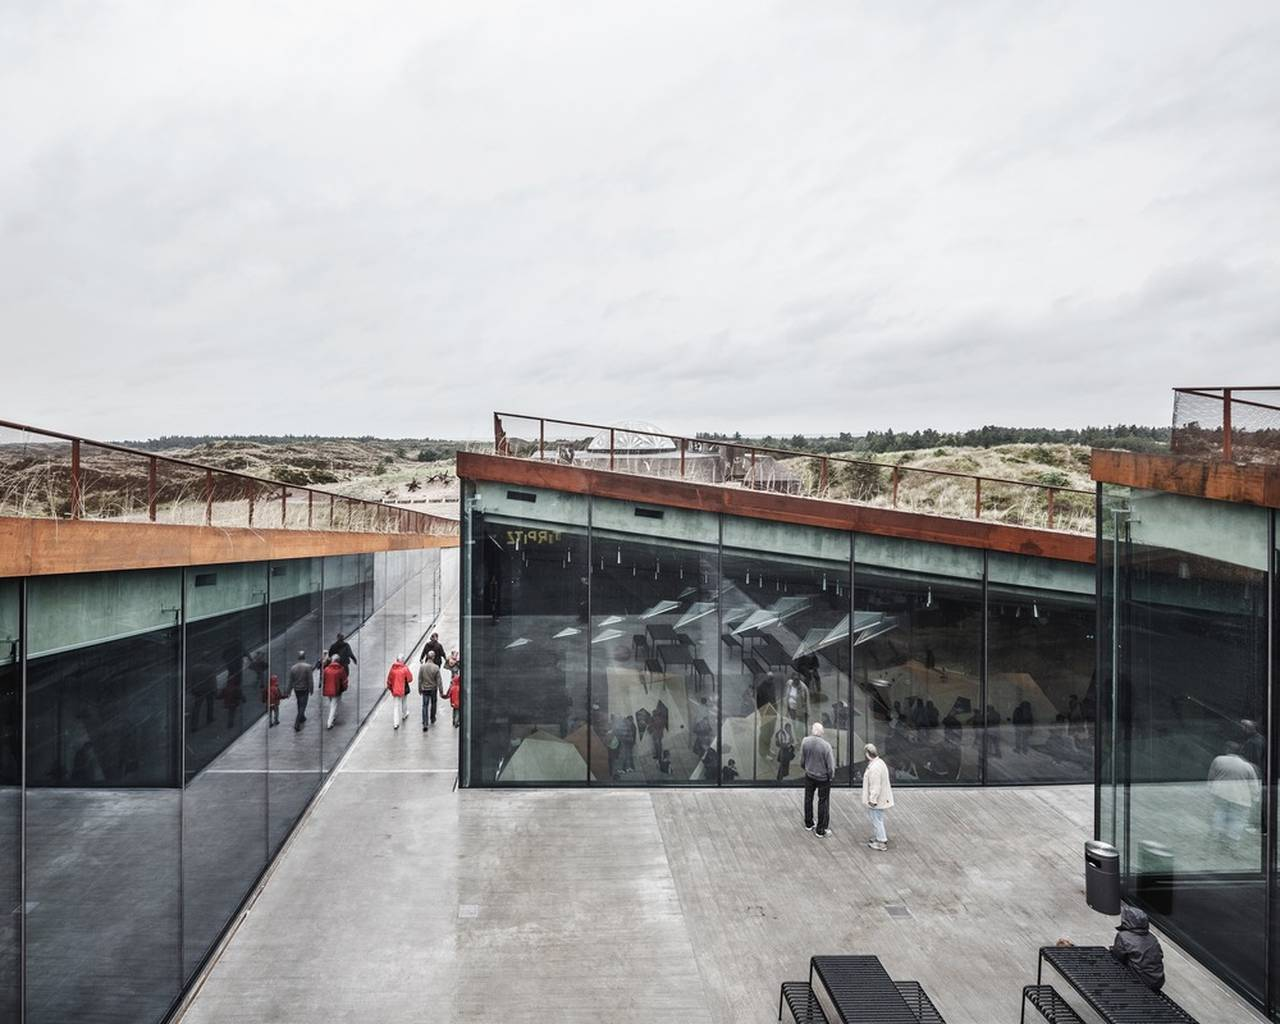 The central courtyard allows access into the four underground gallery spaces that have an abundance of daylight even though they are literally carved into the sand : Photo credit © Rasmus Hjortshoj